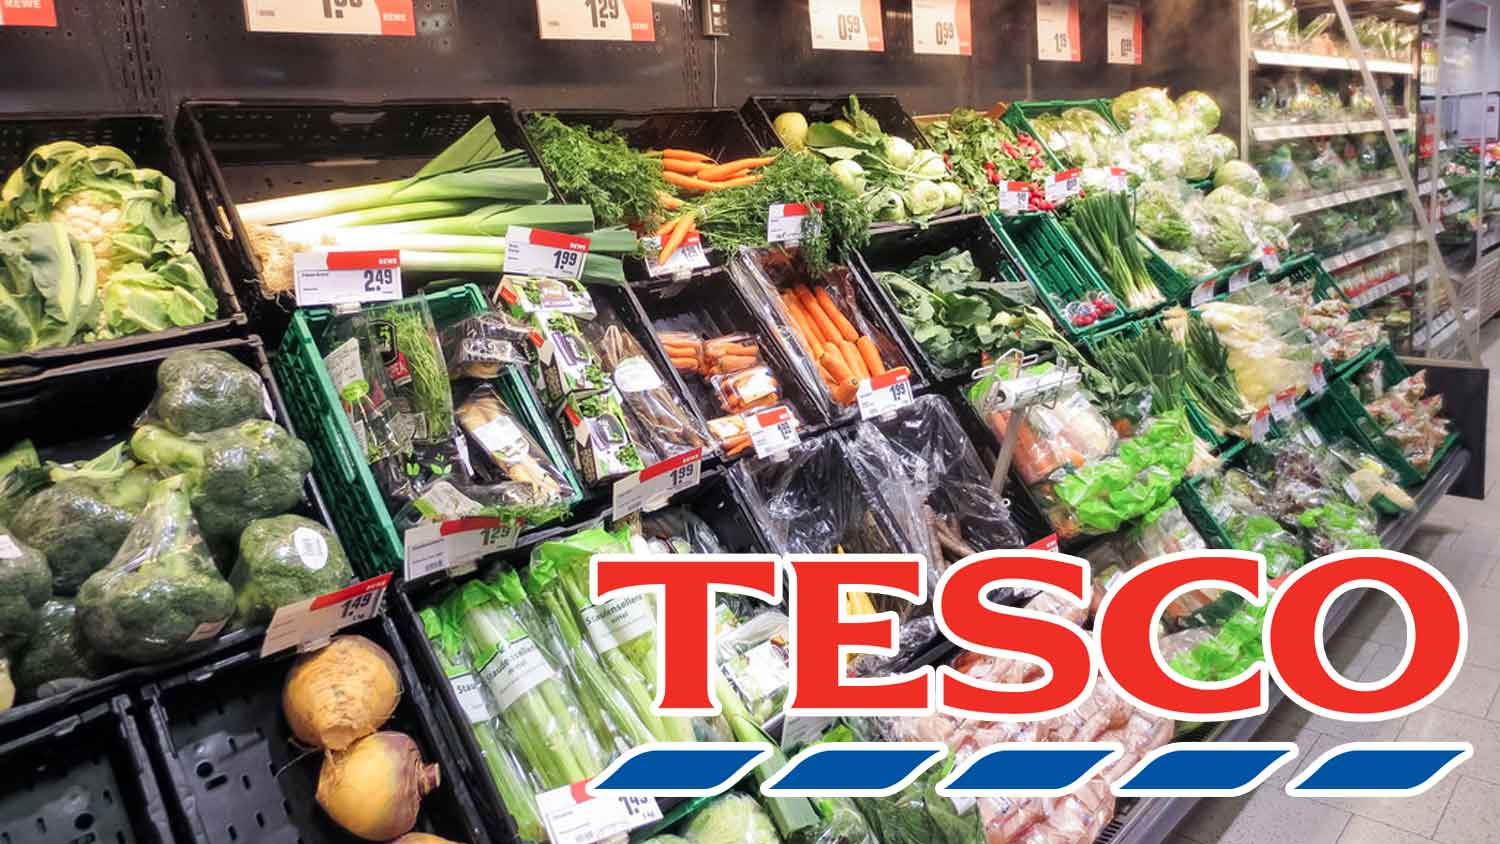 Tesco Is Removing Plastic From Its Fruit and Vegetables